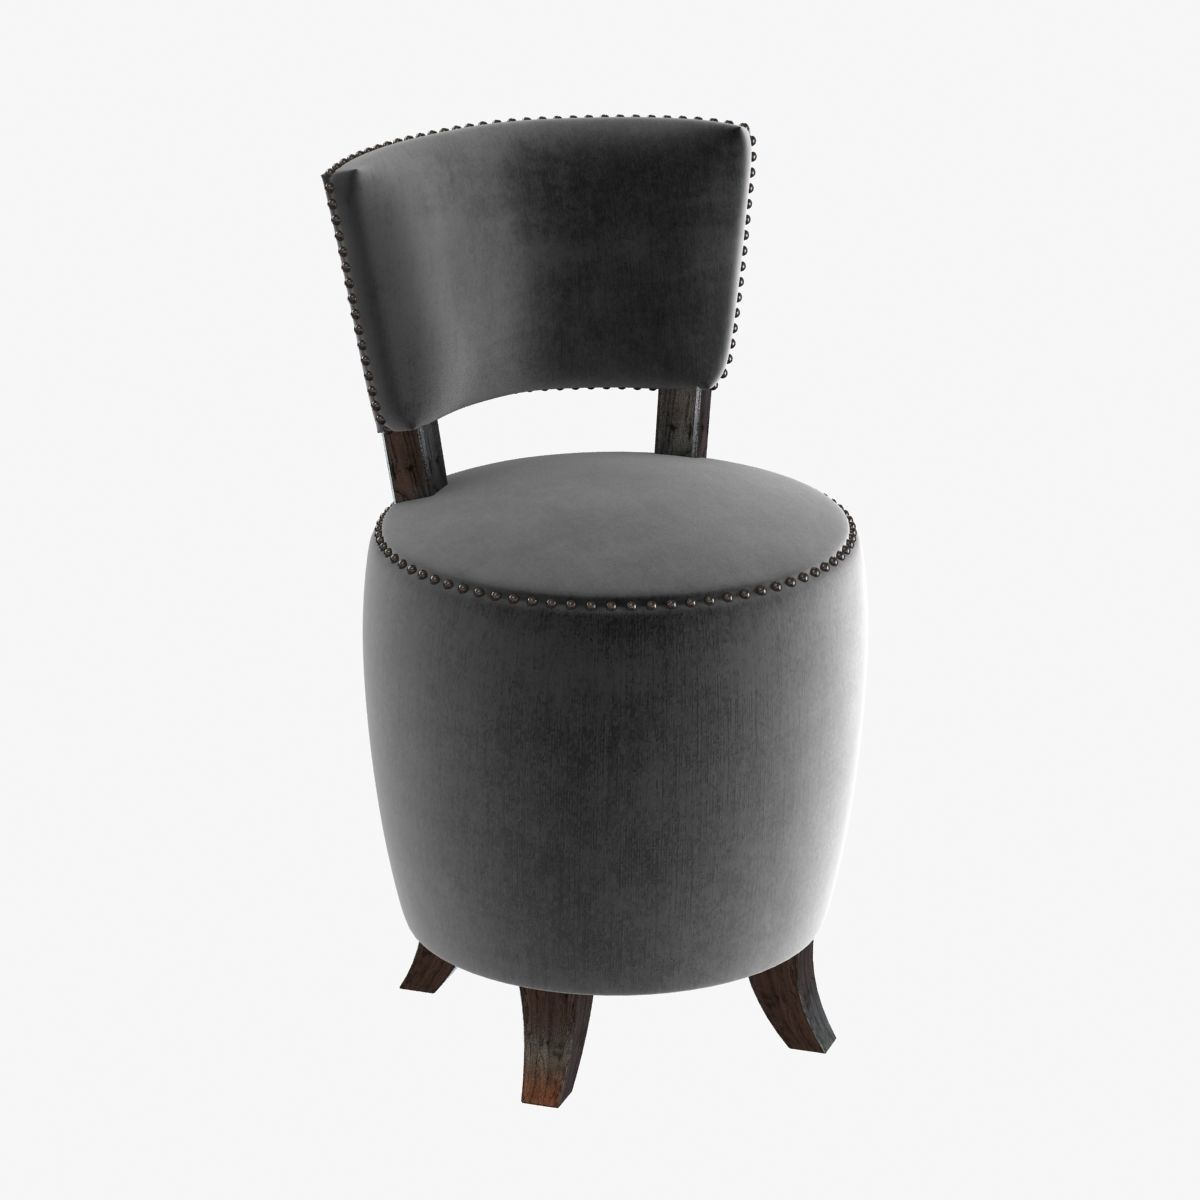 Small Chairs For Bedroom Small Round Velvet Chair For Bedroom 3d Model